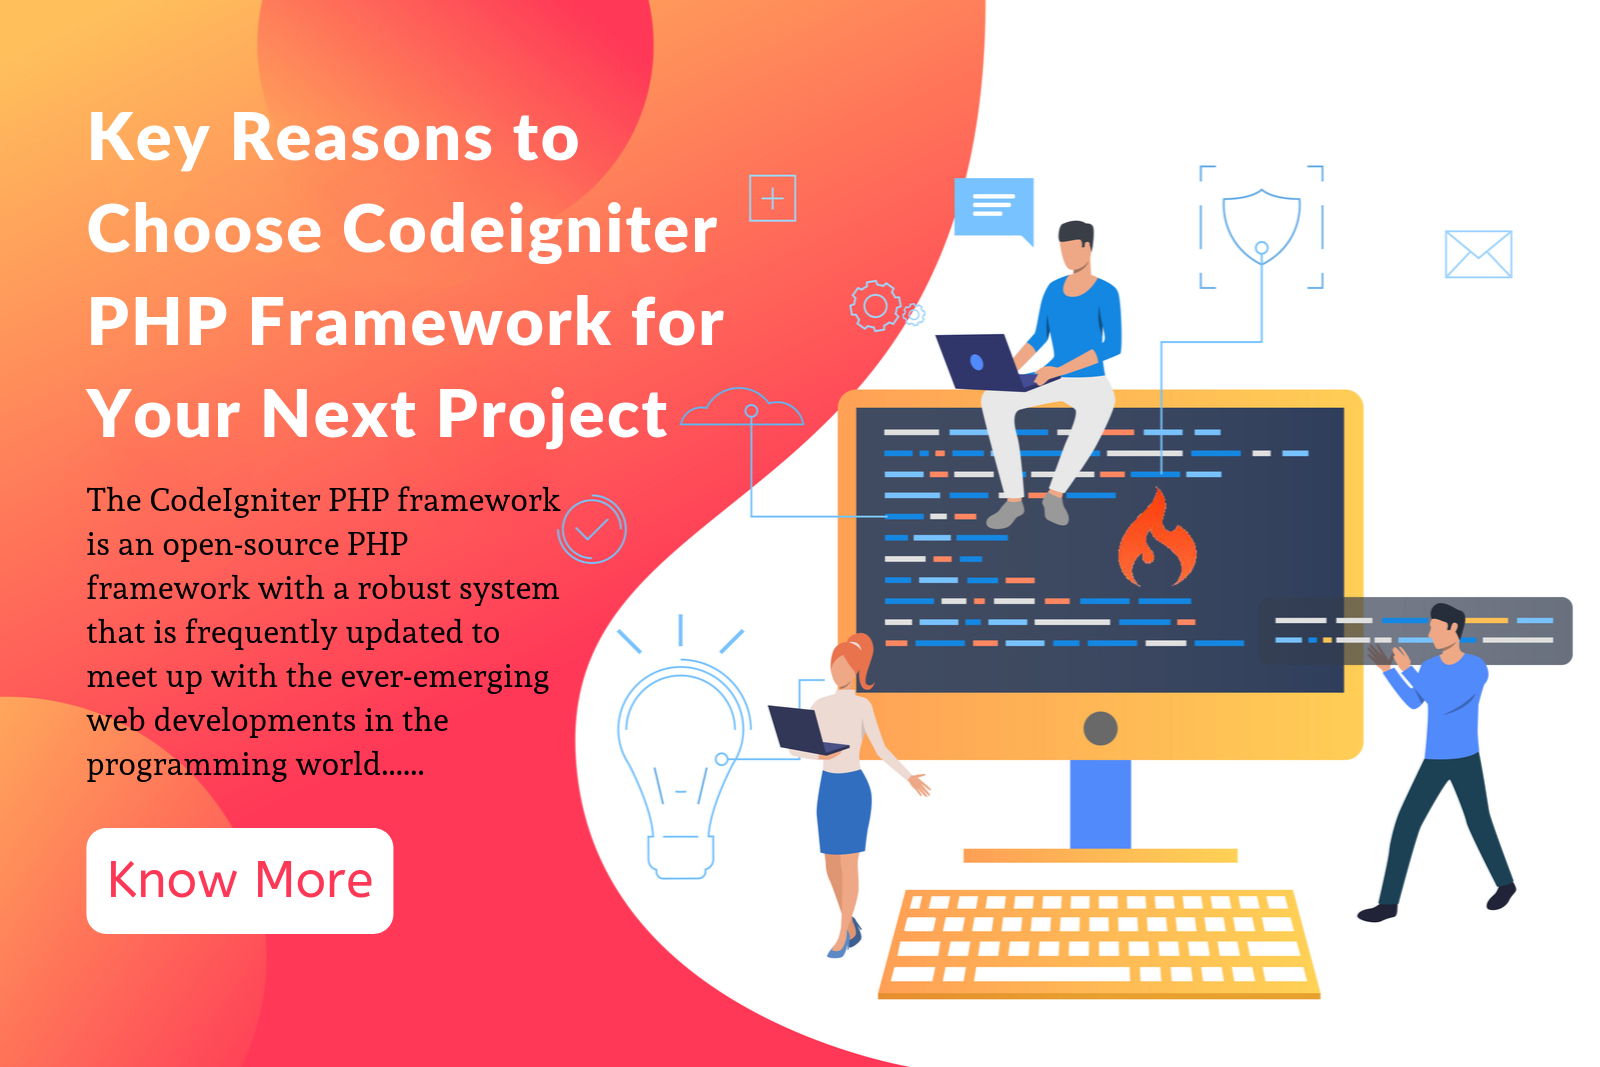 Key Reasons to Choose Codeigniter PHP Framework for Your Next Project